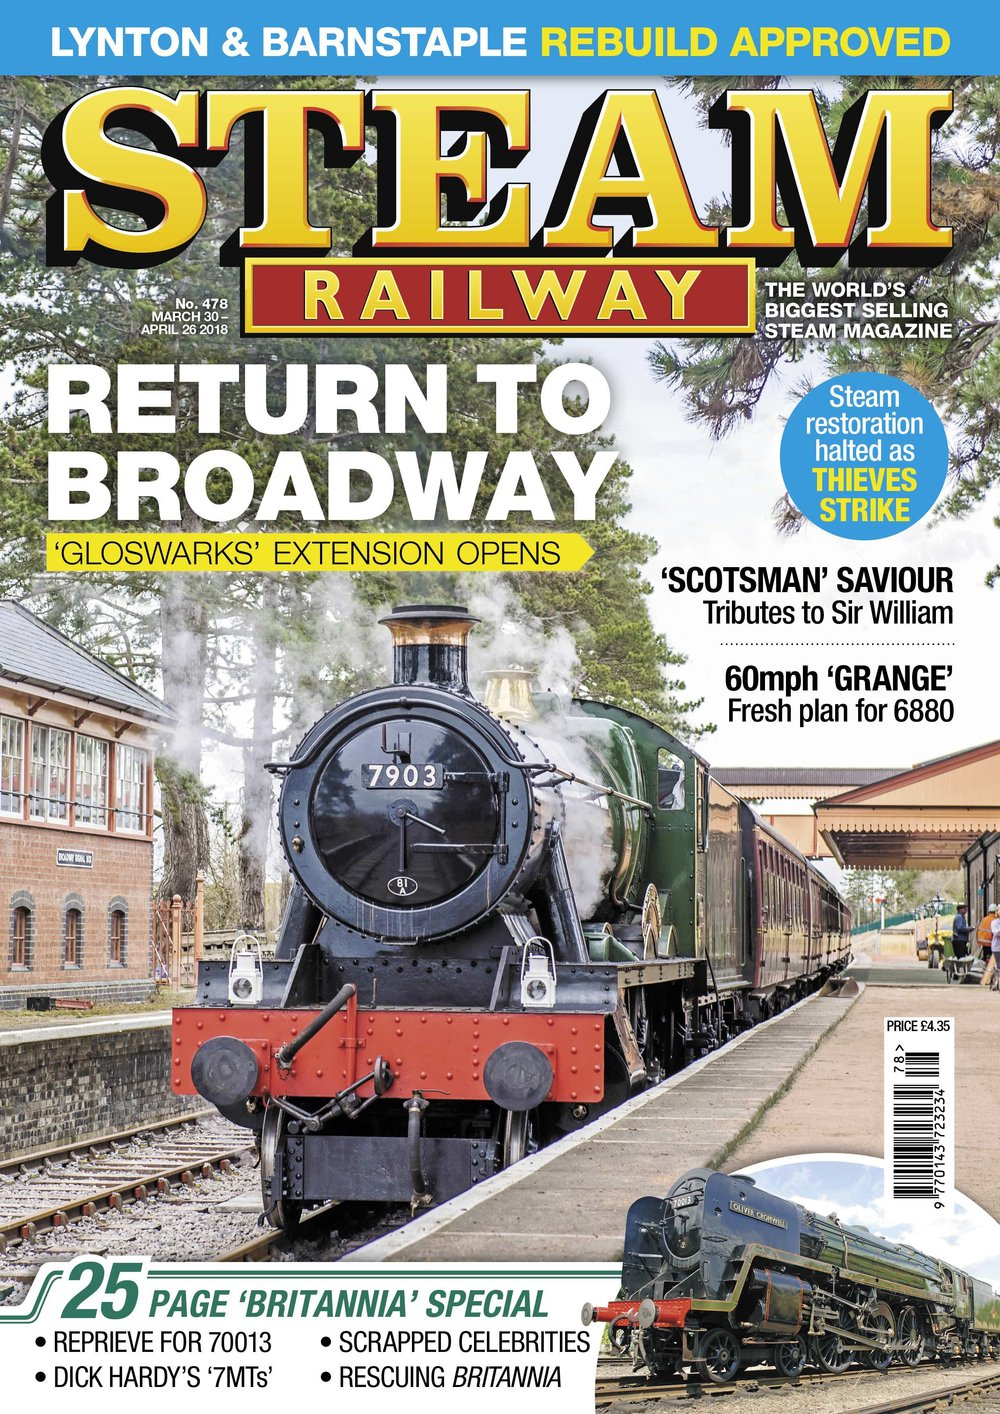 Steam Railway  SR478 - on sale NOW!